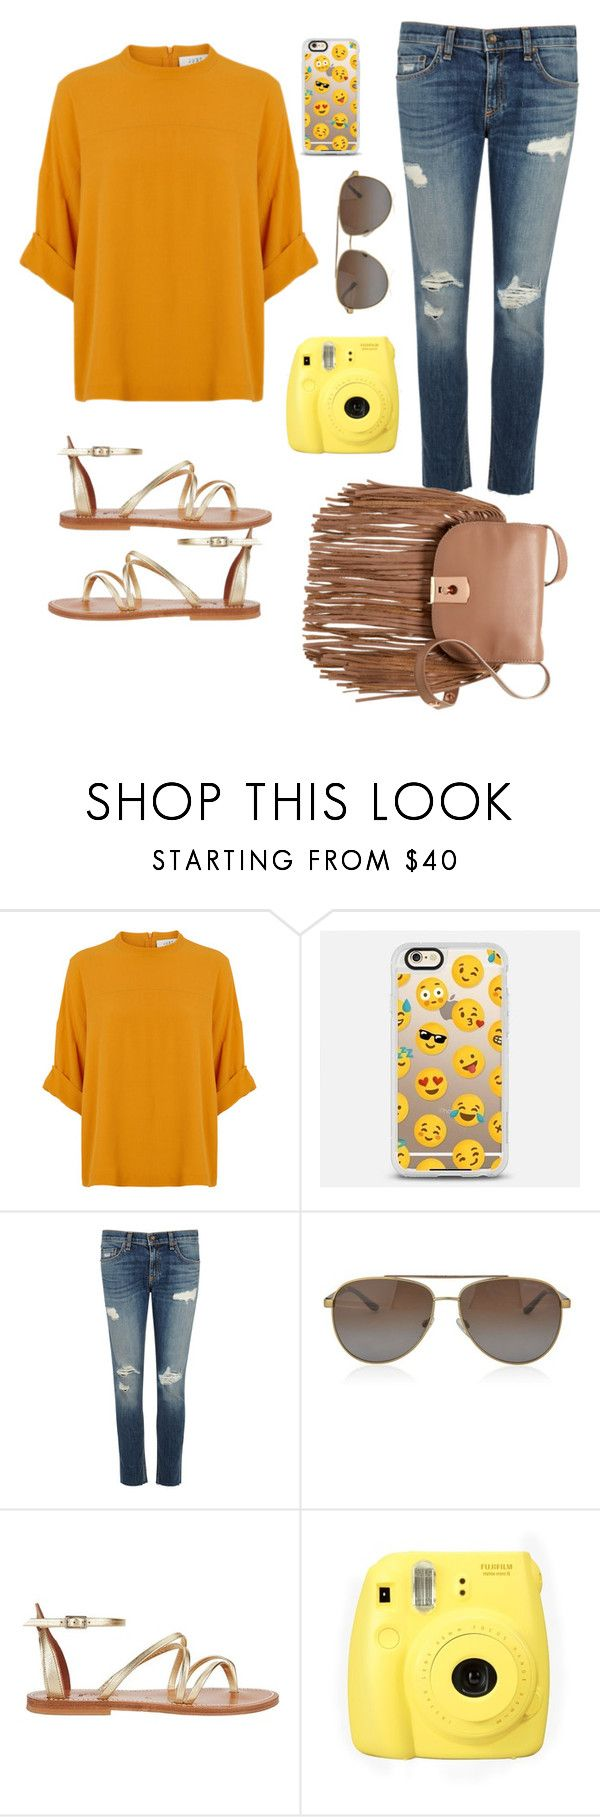 """Emoji"" by erinlarson0226 ❤ liked on Polyvore featuring Casetify, rag & bone/JEAN, MICHAEL Michael Kors, K. Jacques, Fujifilm and Botkier"